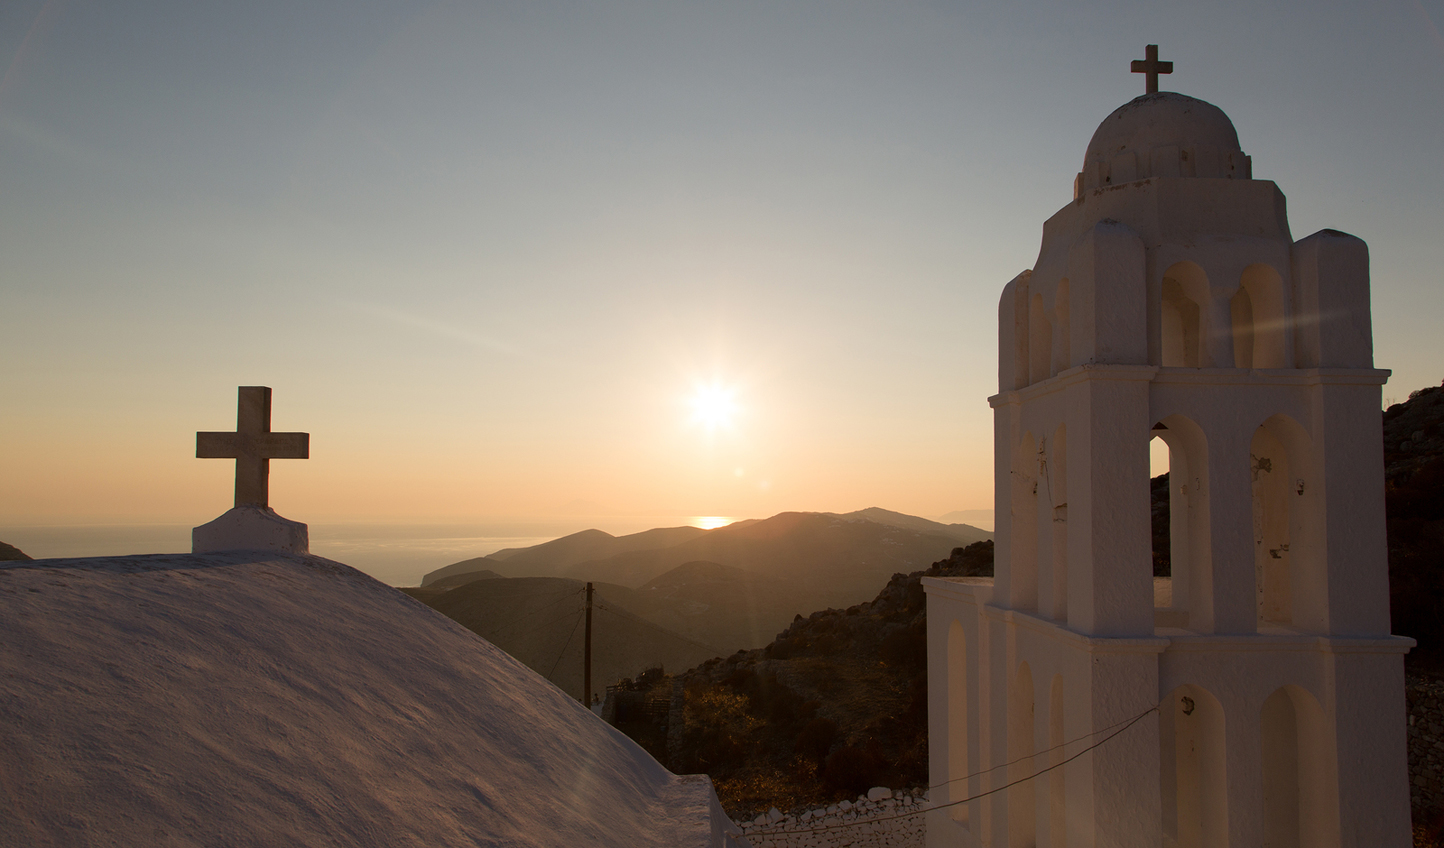 Watch the sunrise over the hills of Chora